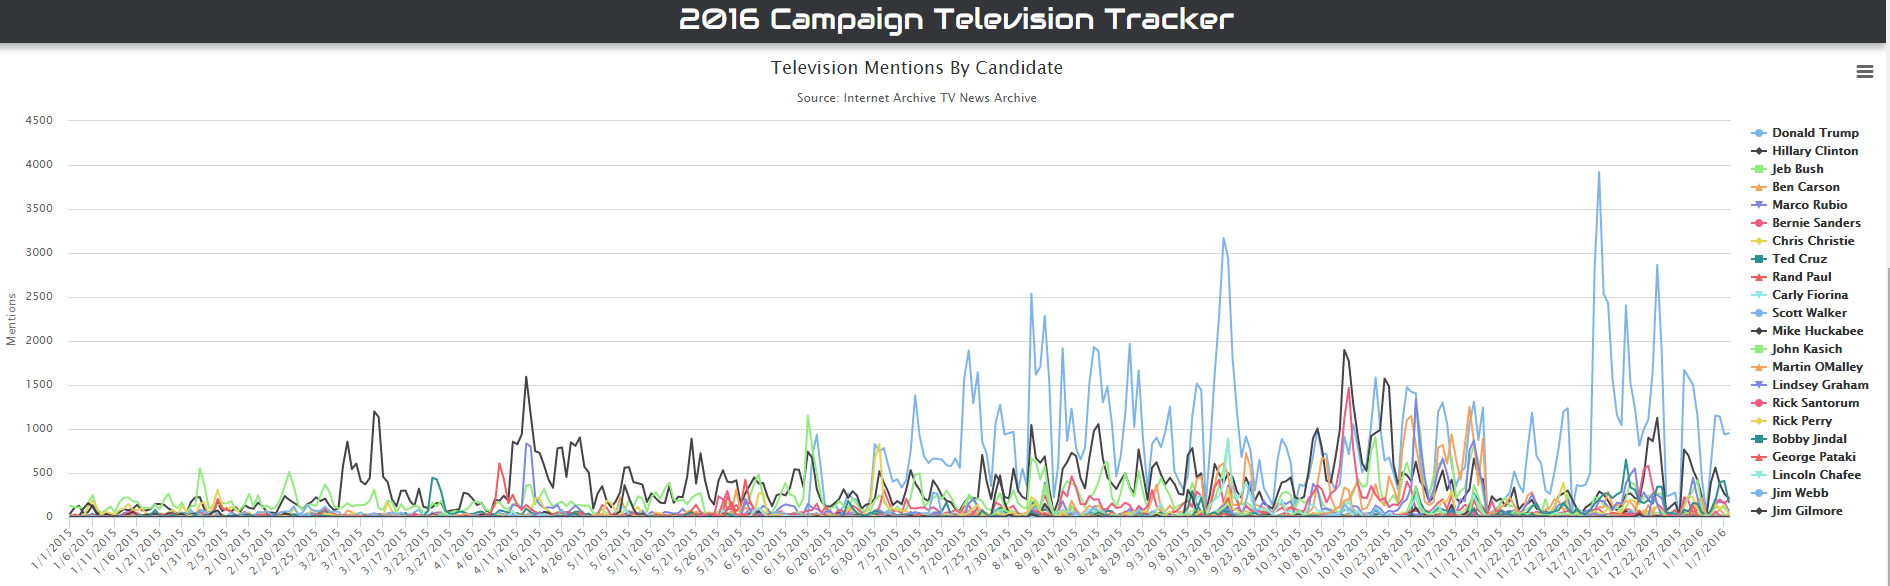 TV mentions by candidate